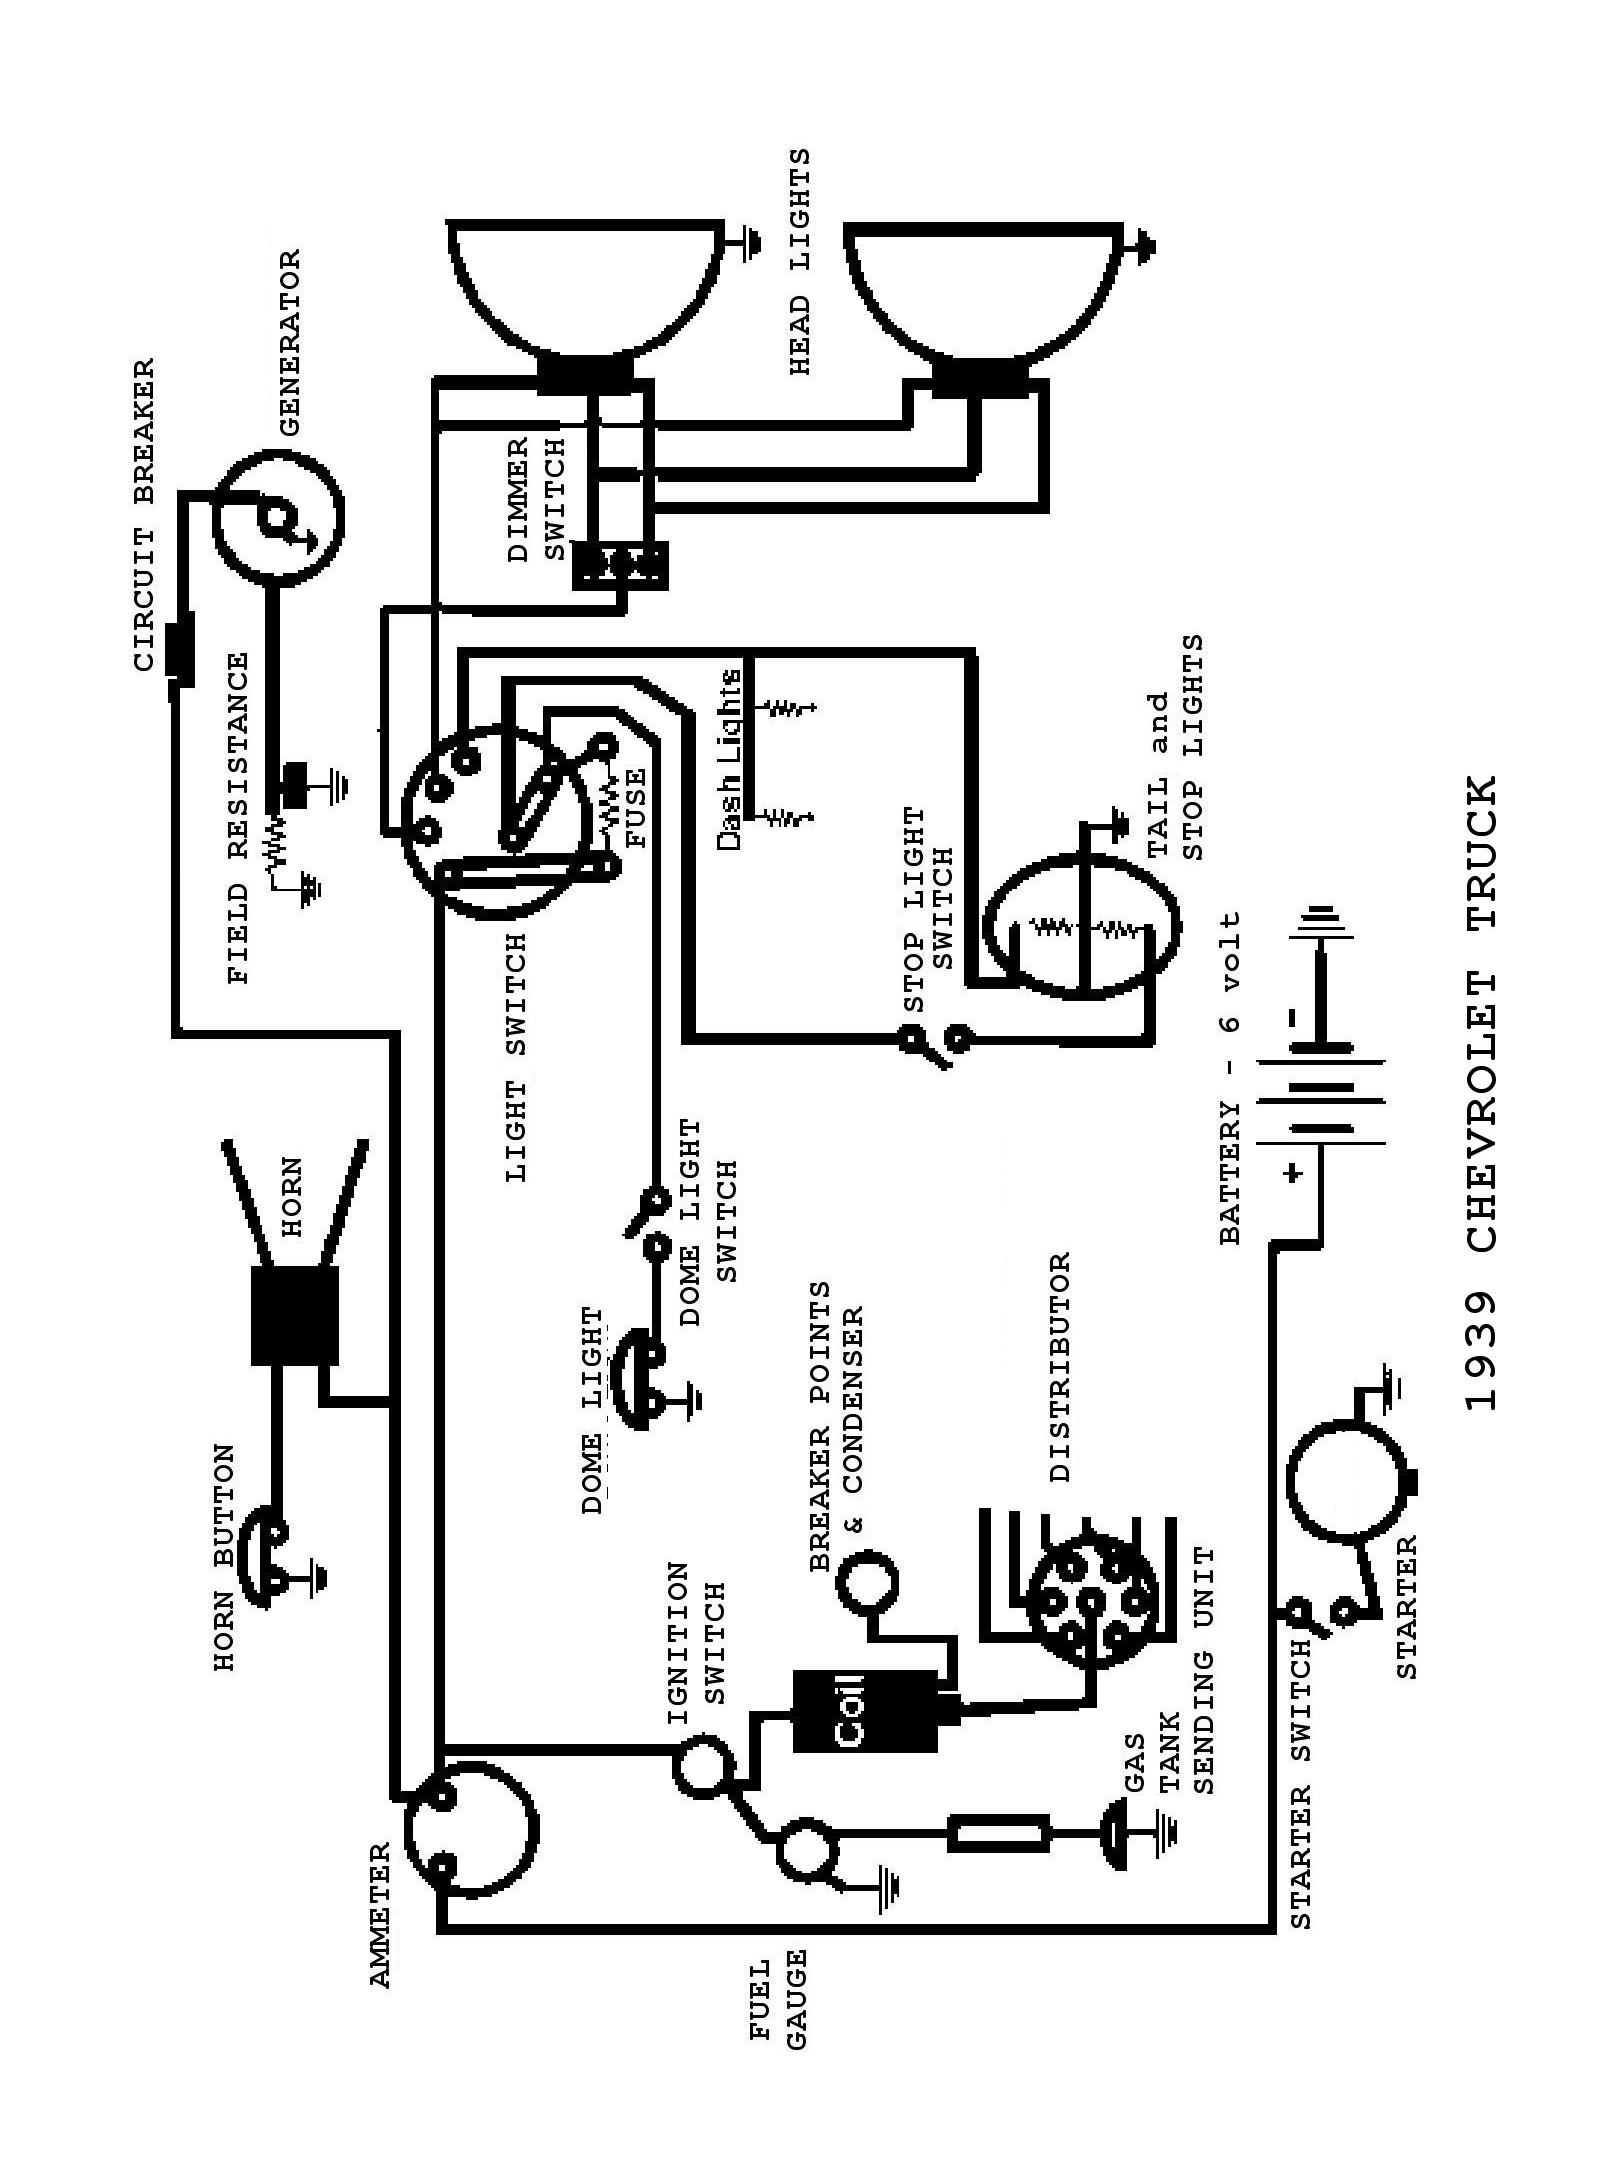 T5794691 Need 2004 chevrolet silverado c wiring in addition Gm Clutch Diagram together with Ford 7710 Tractor Parts Diagram furthermore Heater Blower Motor Wiring Diagram further 2006 Ford Focus Rear Suspension Diagram. on wiring diagram 2016 colorado